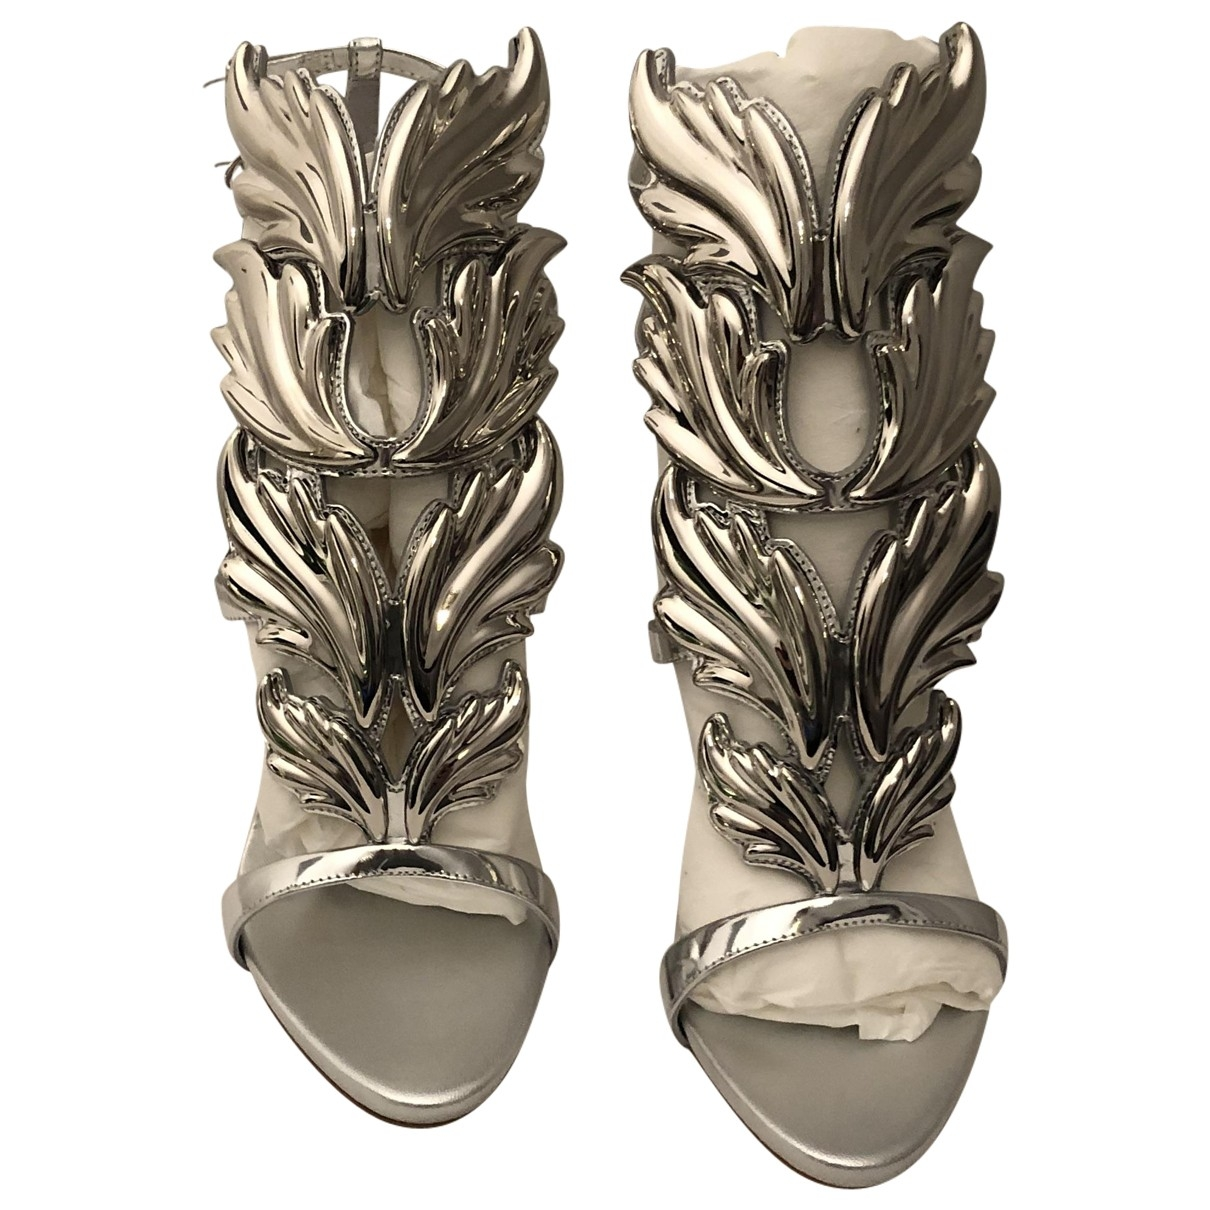 Giuseppe Zanotti \N Silver Leather Sandals for Women 38 EU